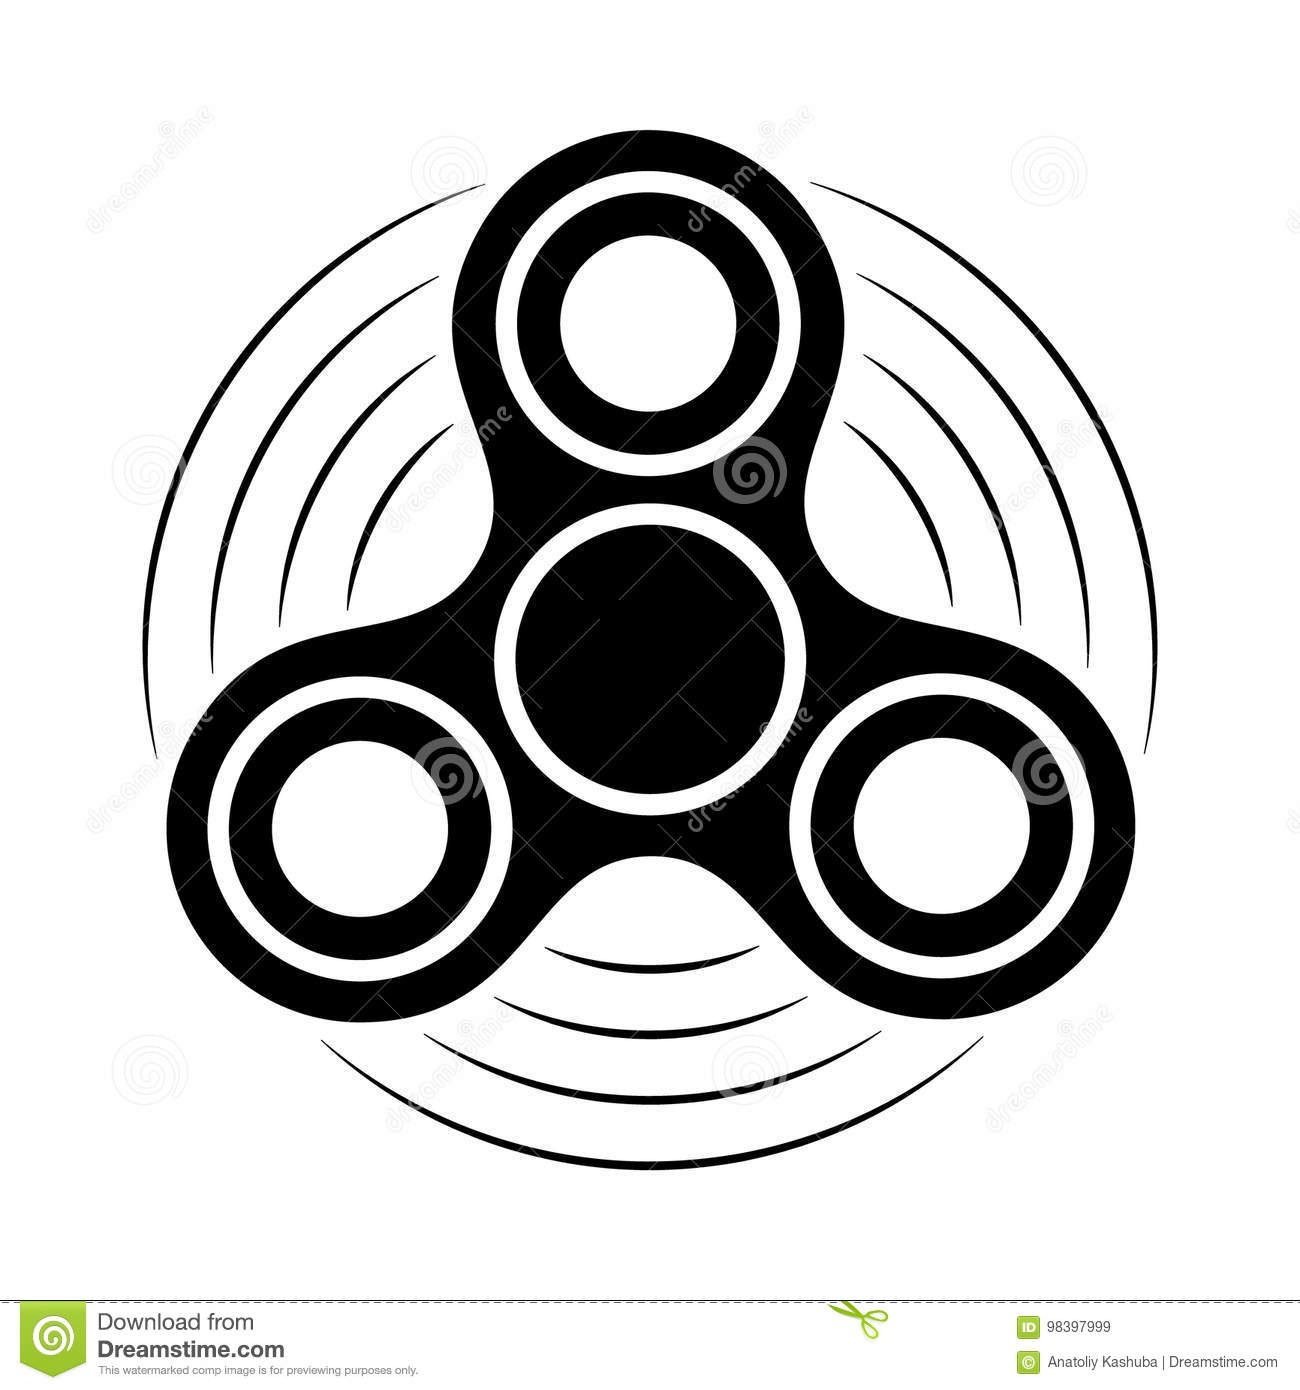 Download Fidget Spinner Black And White Icon. Hand Rotation Antistress Toy  For Relax. Twist